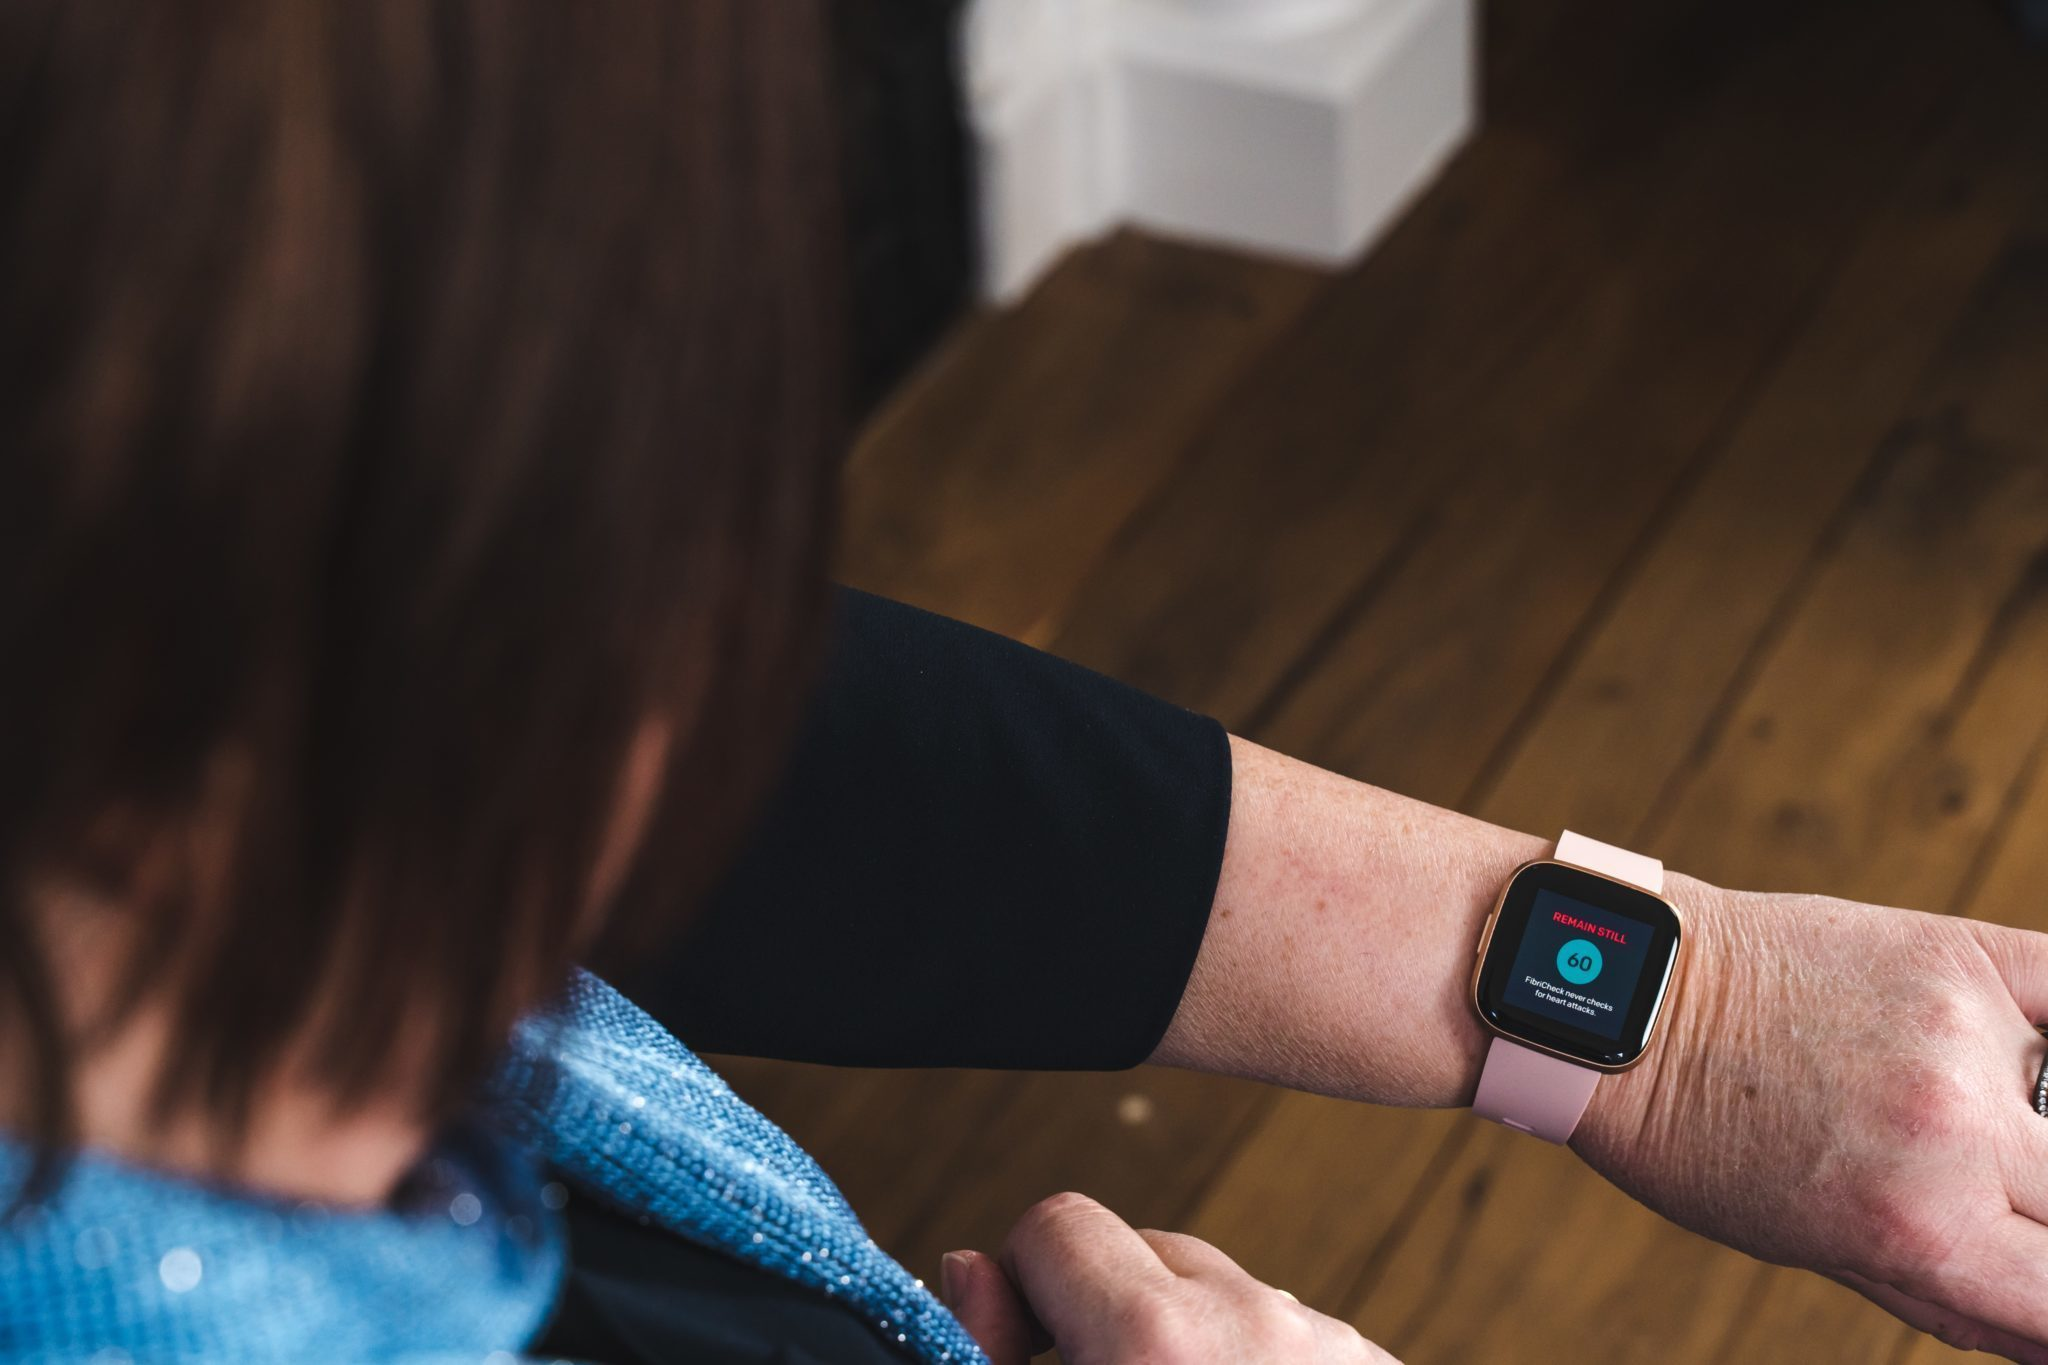 Check Your Heart Rhythm With Your Smartwatch